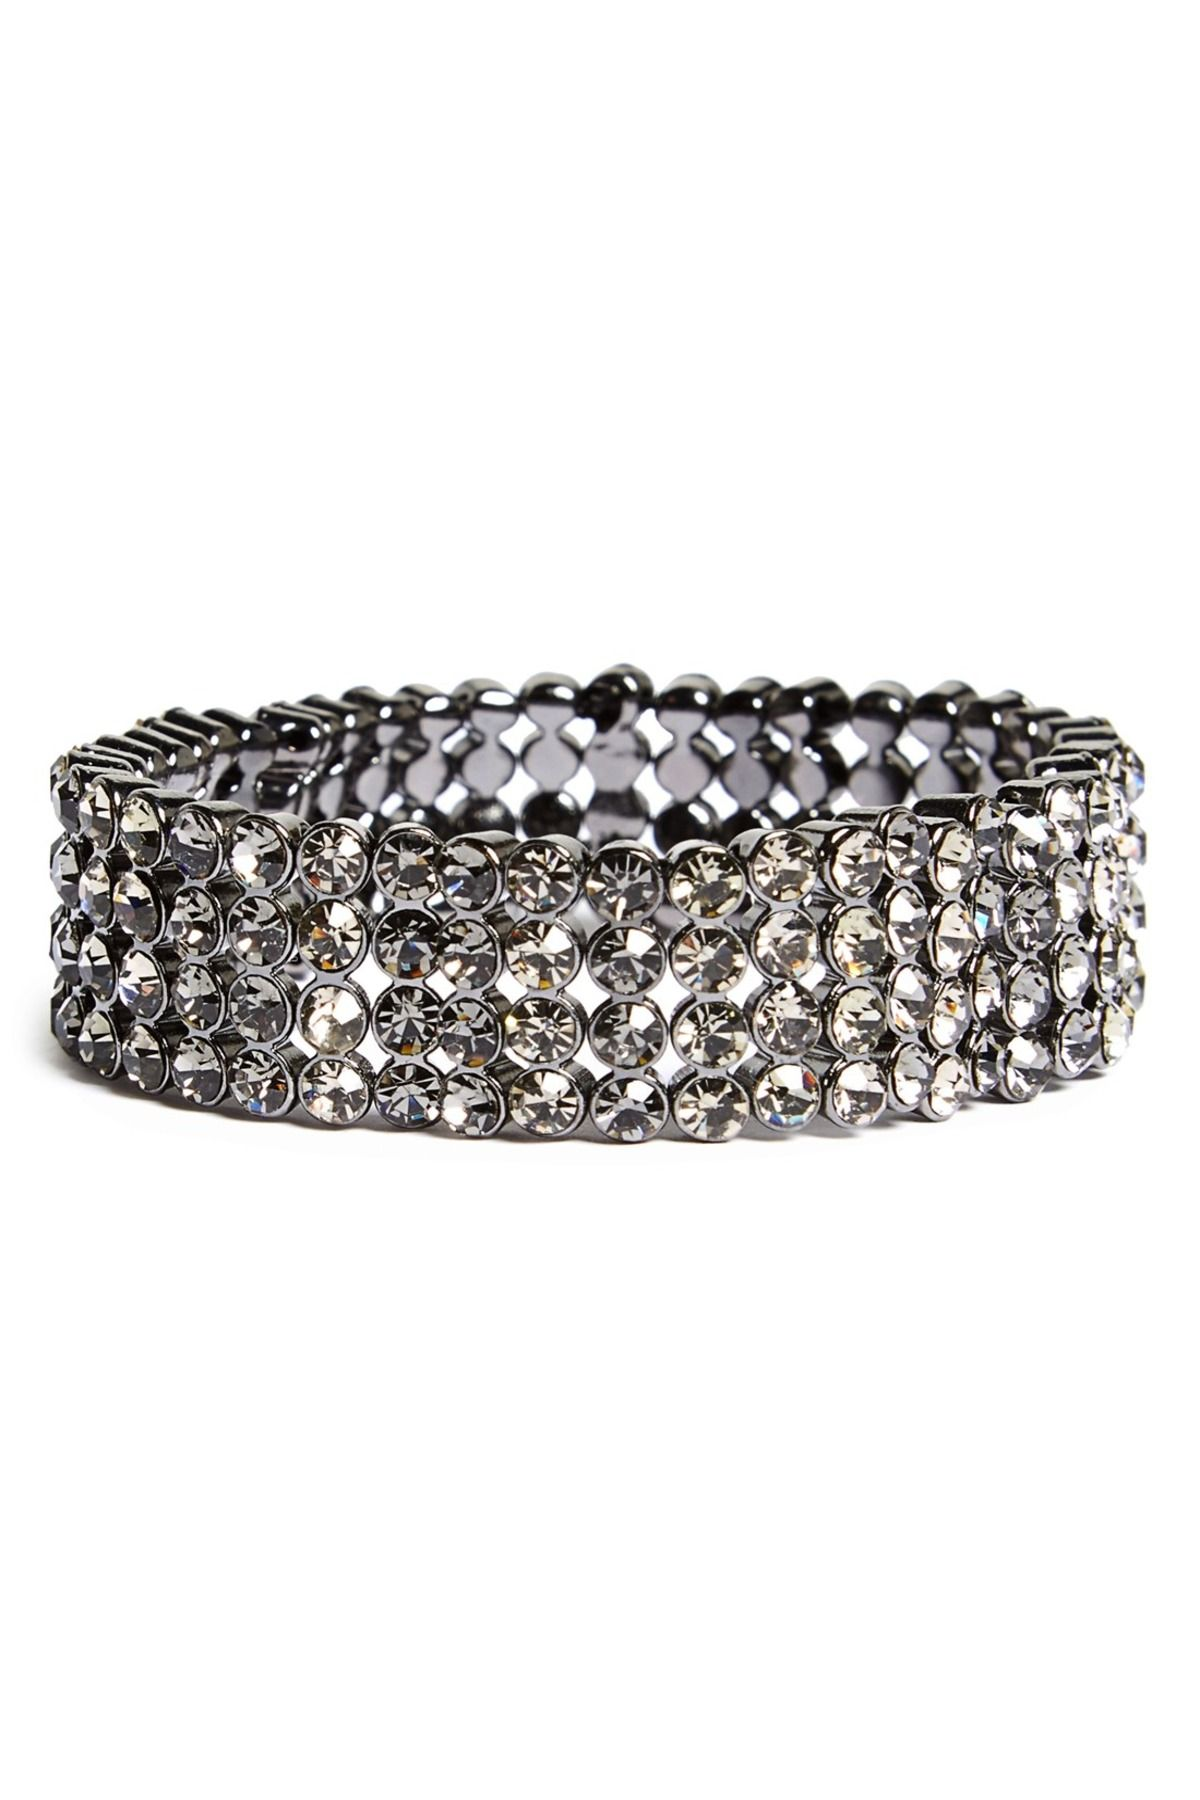 Natasha Accessories Natasha Crystal Hematite Stretch Bracelet UC703y